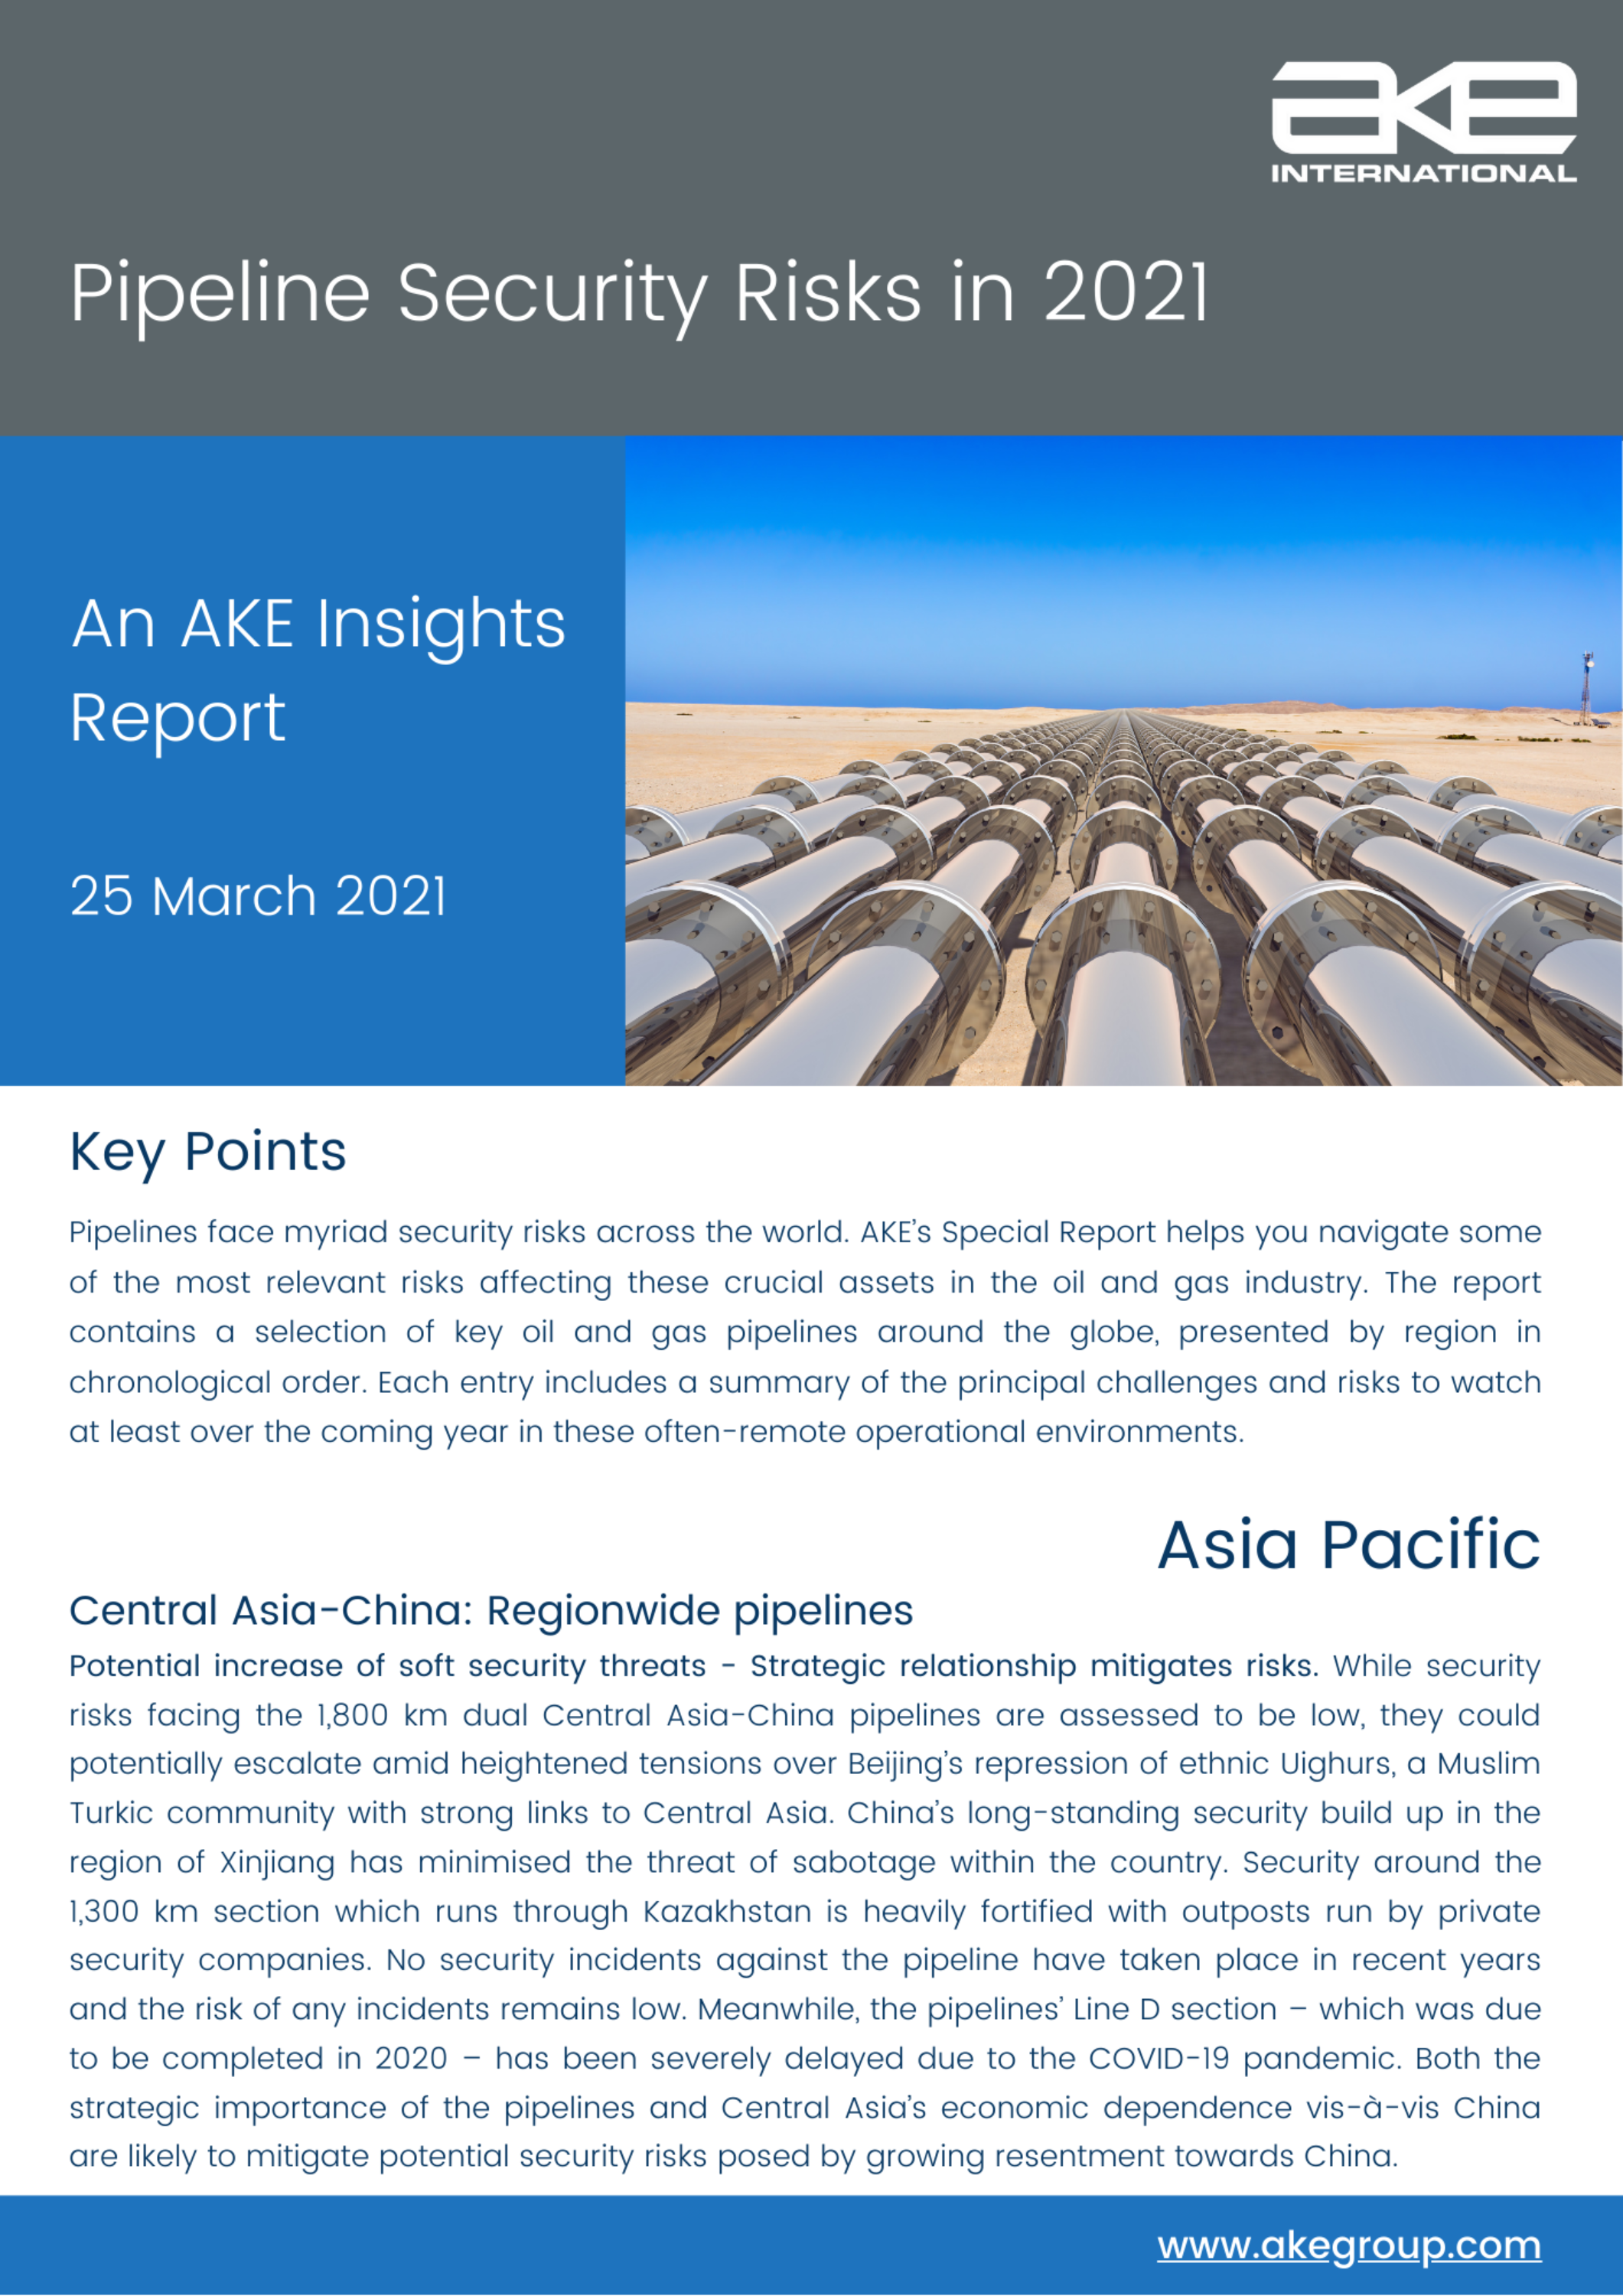 AKE Insights Report: Pipeline Security Risks in 2021